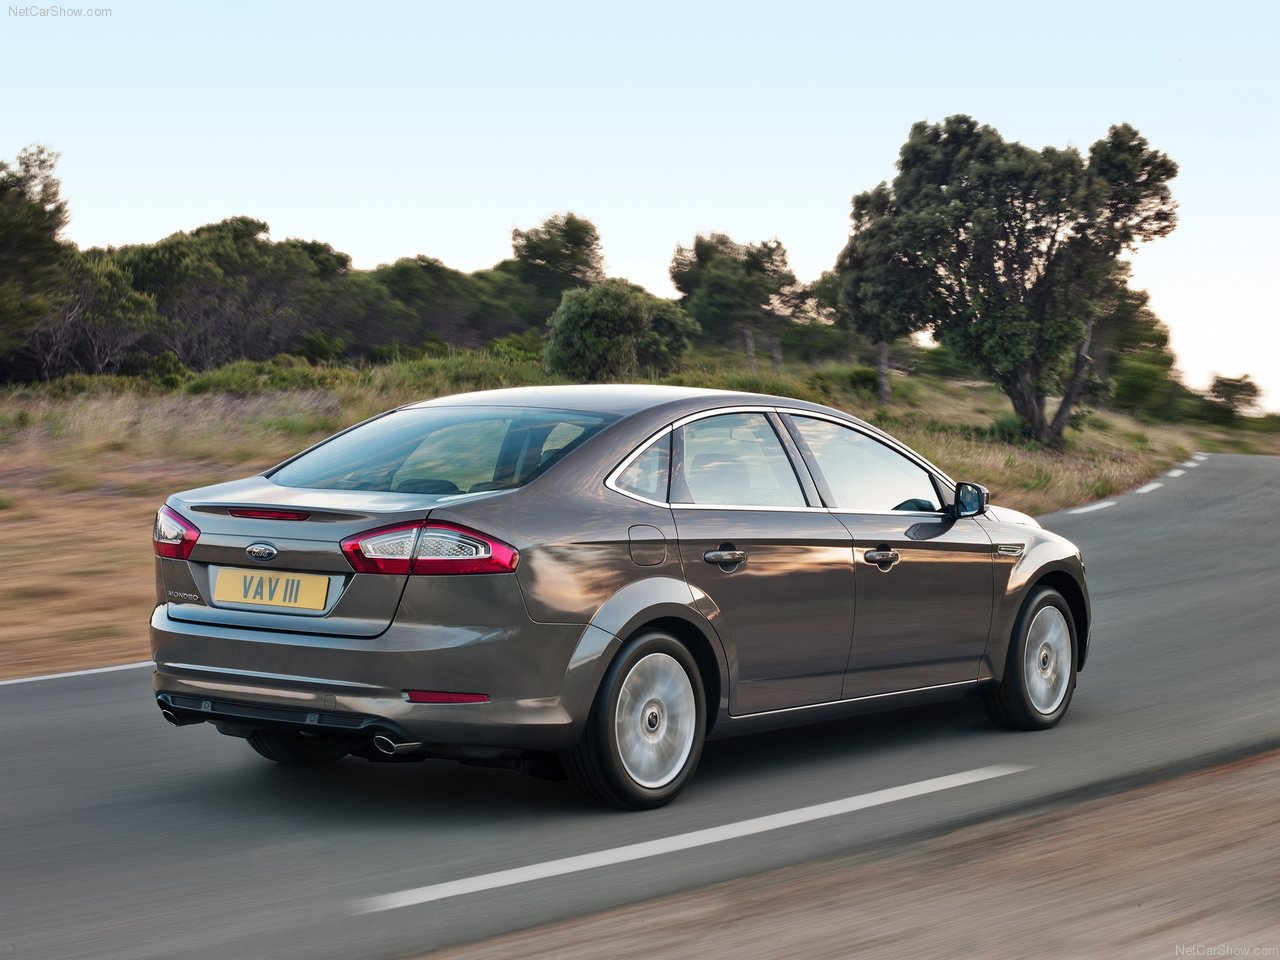 2010 Ford Mondeo Hatchback 5-door